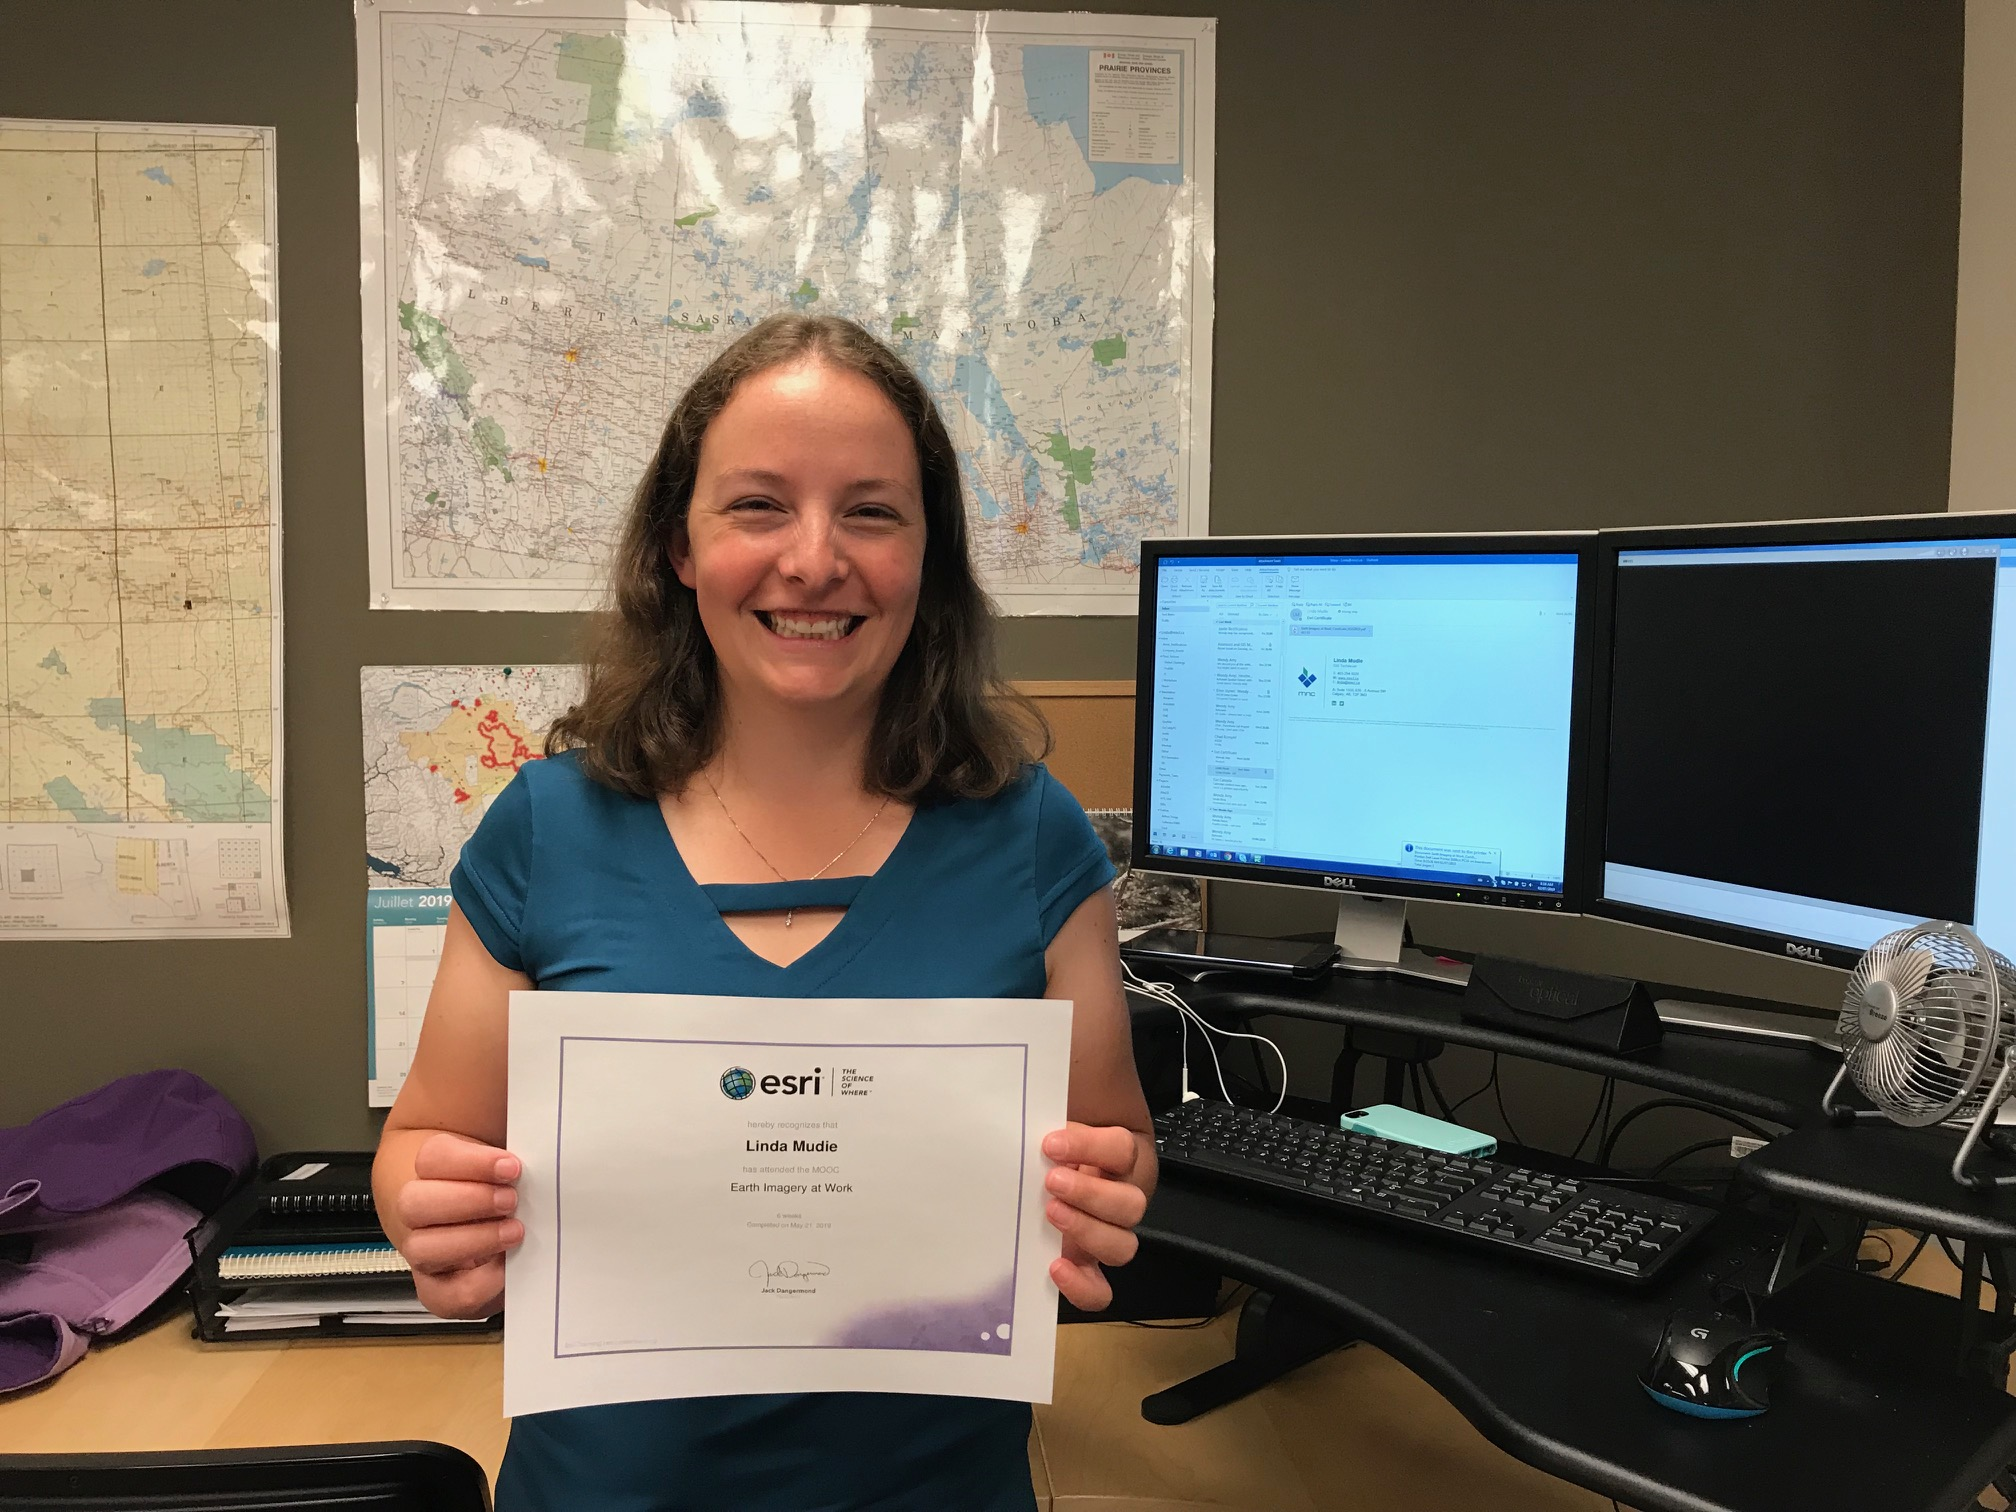 Linda Mudie earns Esri's Earth Imagery at Work Certificate